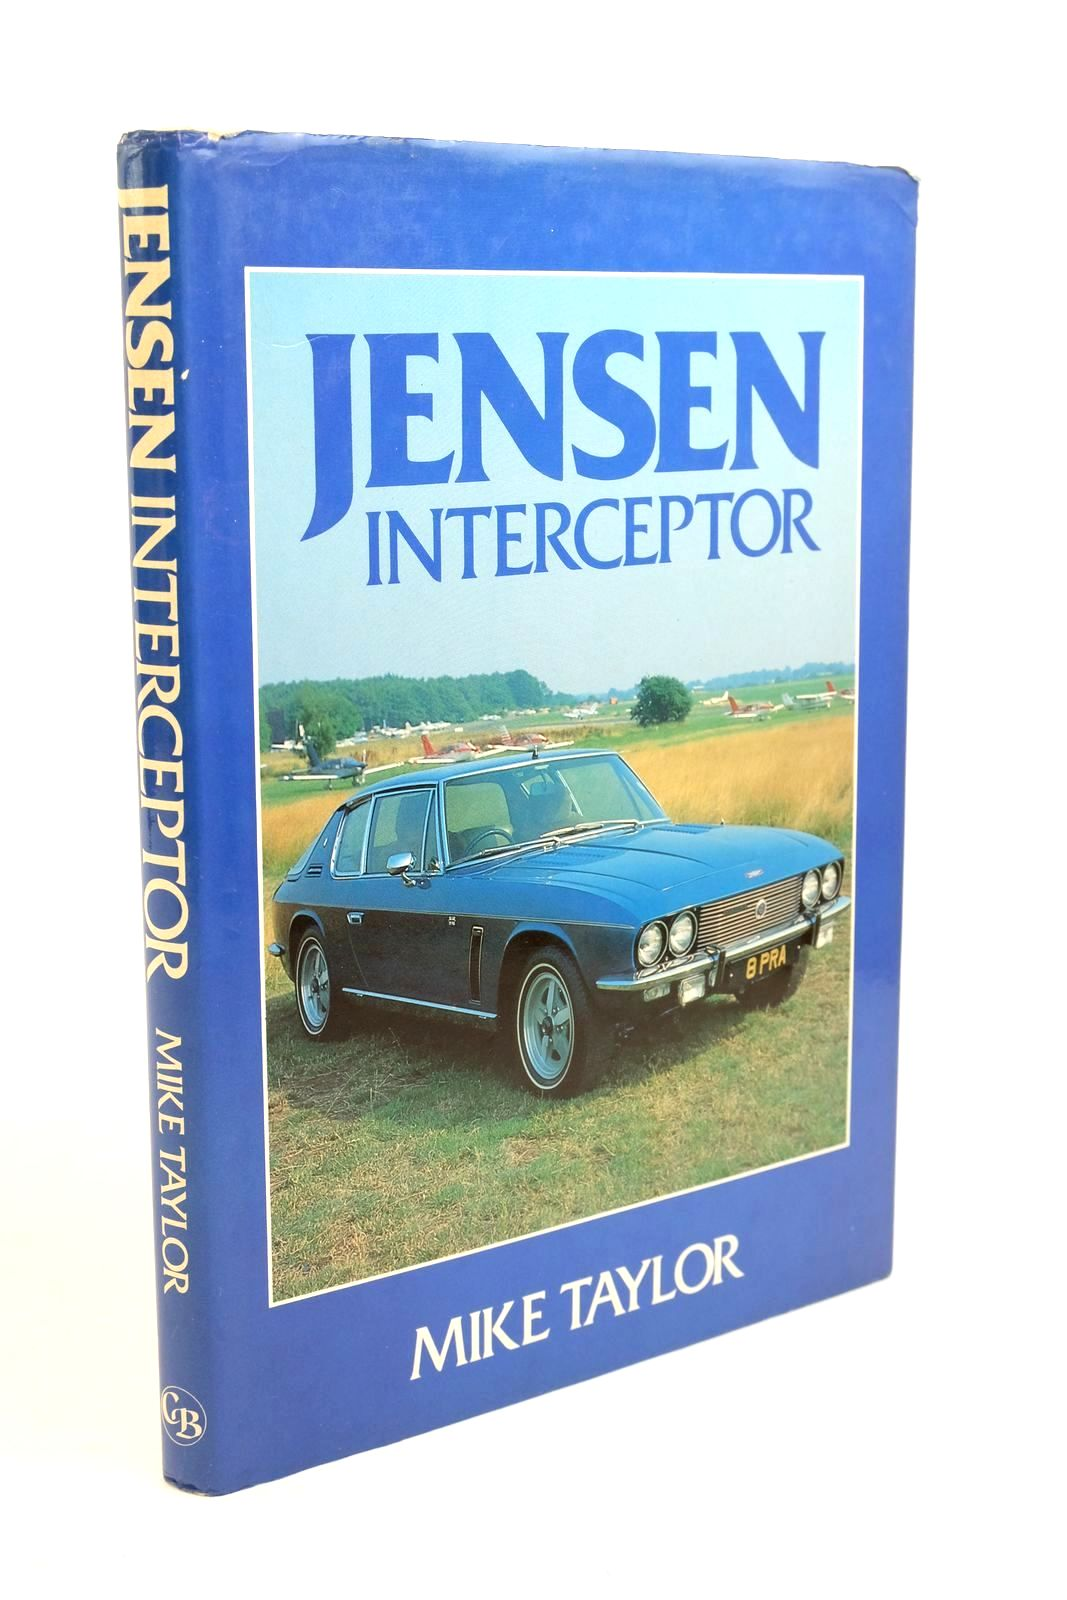 Photo of JENSEN INTERCEPTOR written by Taylor, Mike published by Cadogan Books (STOCK CODE: 1321238)  for sale by Stella & Rose's Books